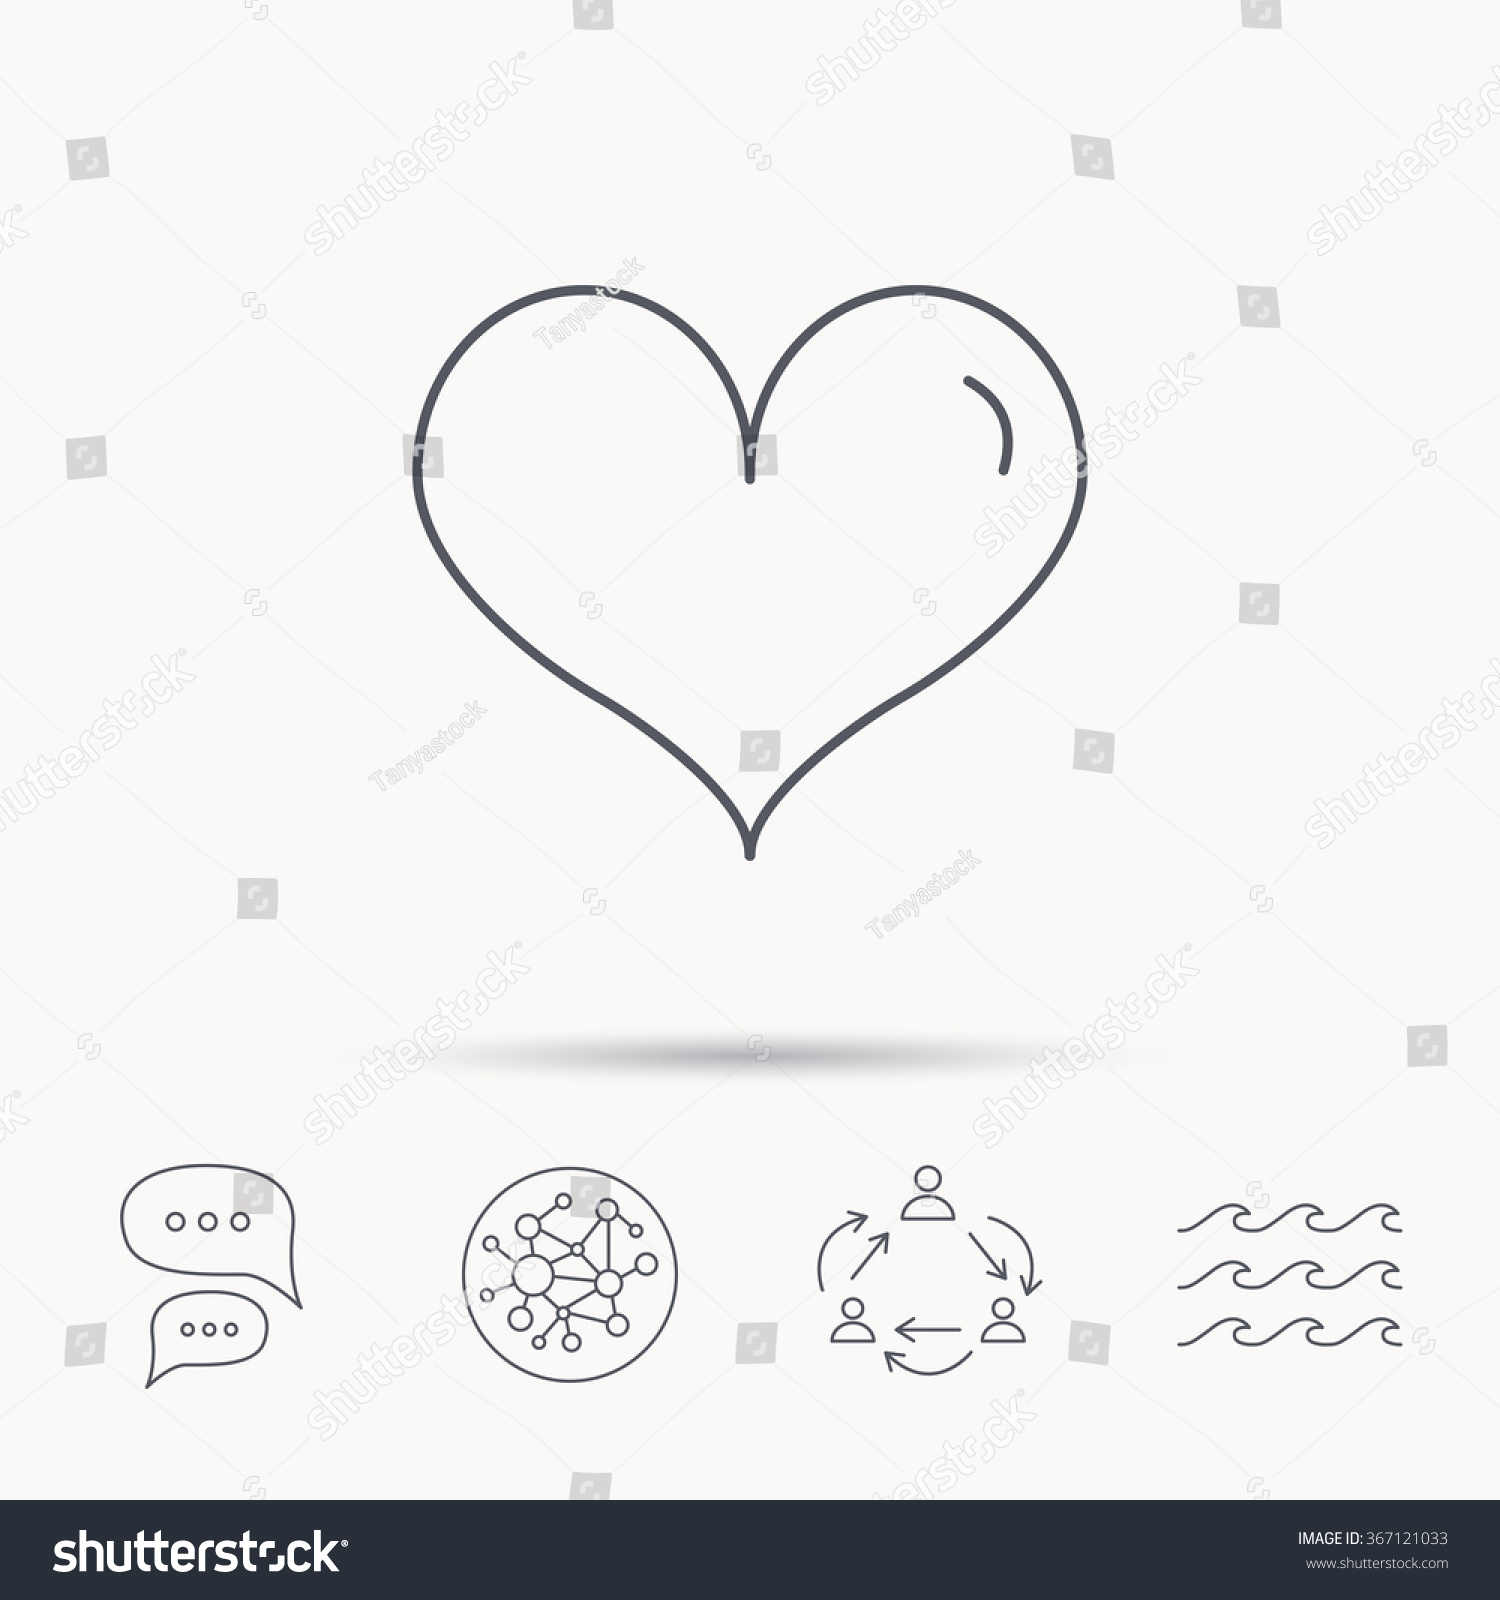 Royalty Free Heart Icon Love Sign Life Symbol 367121033 Stock